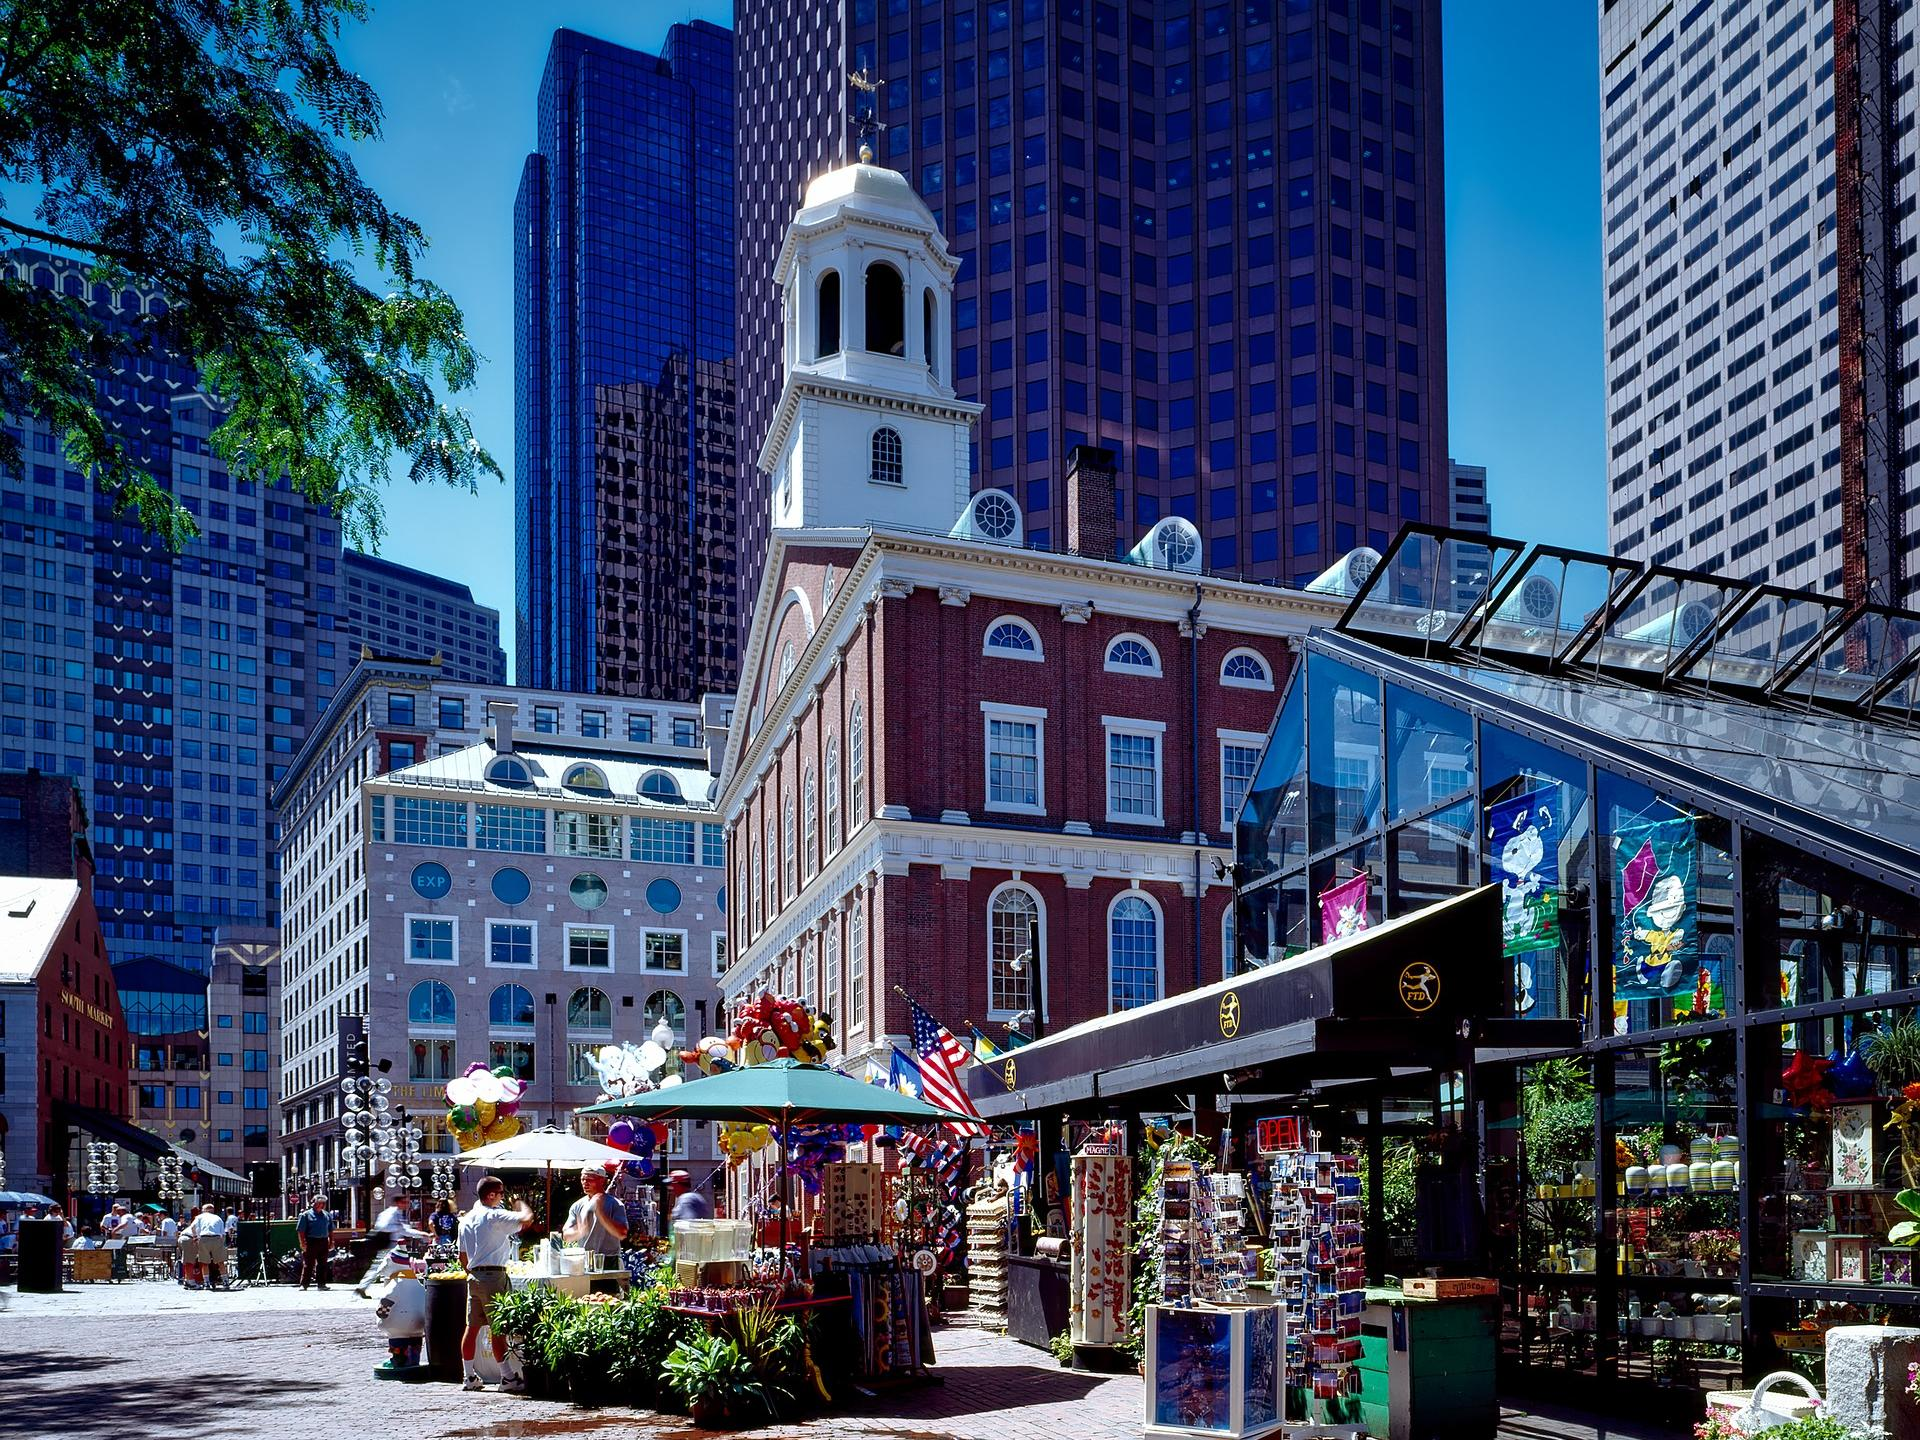 Exterior of Faneuil Hall